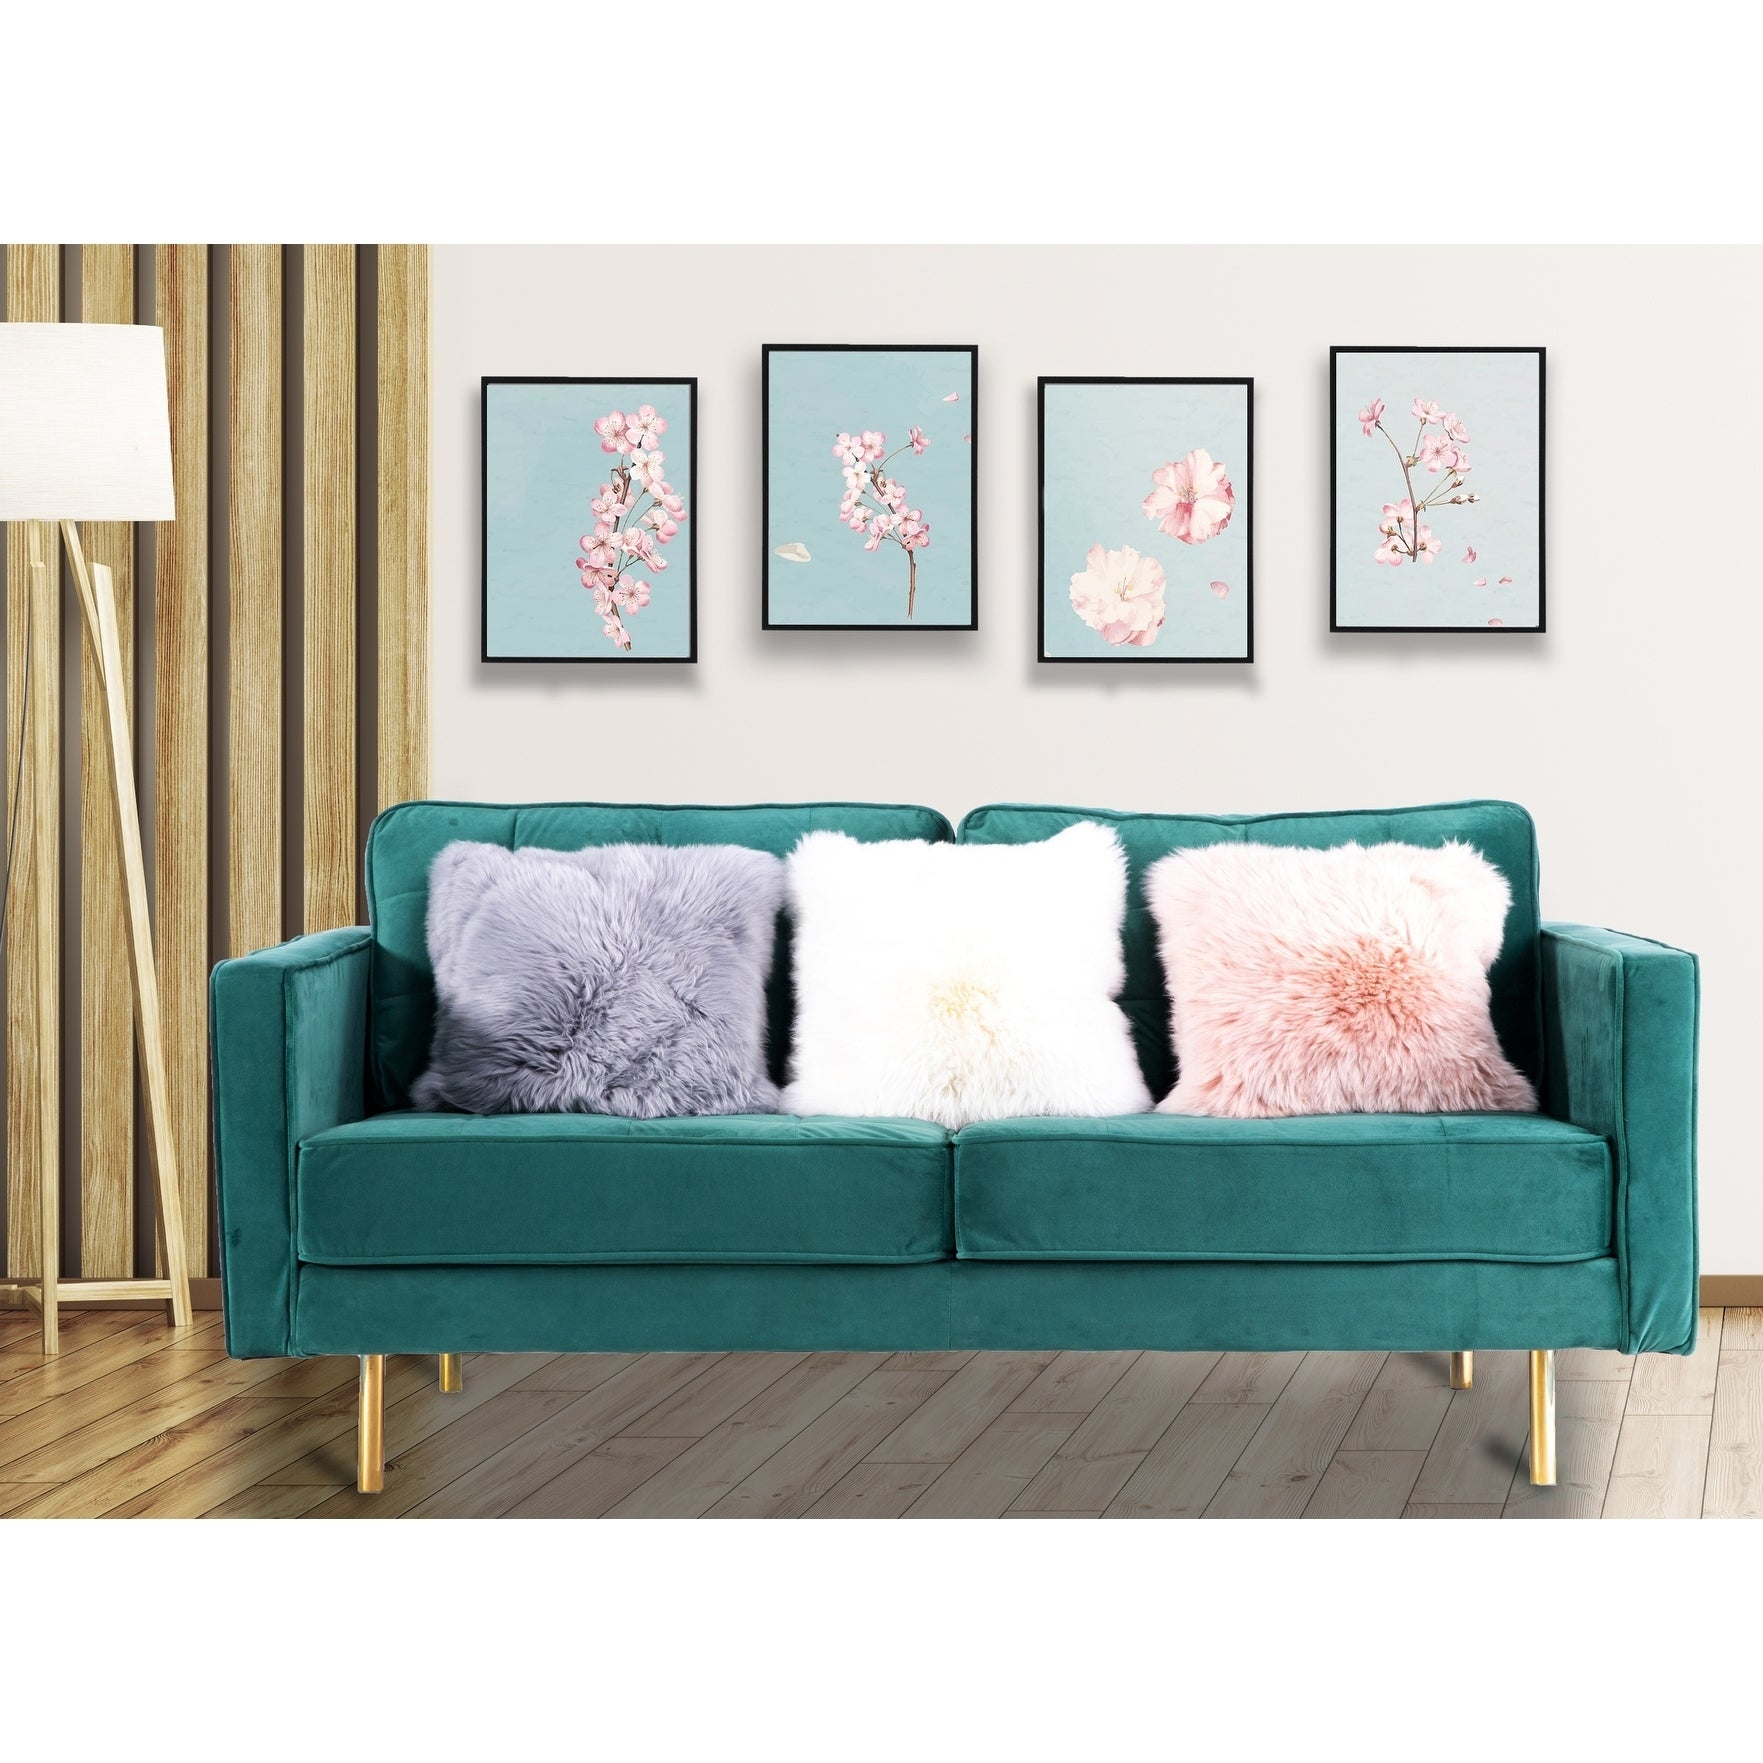 Picture of: Green Teal Modern Velvet Tufted Sofa With Gold Legs Overstock 28979096 Medium